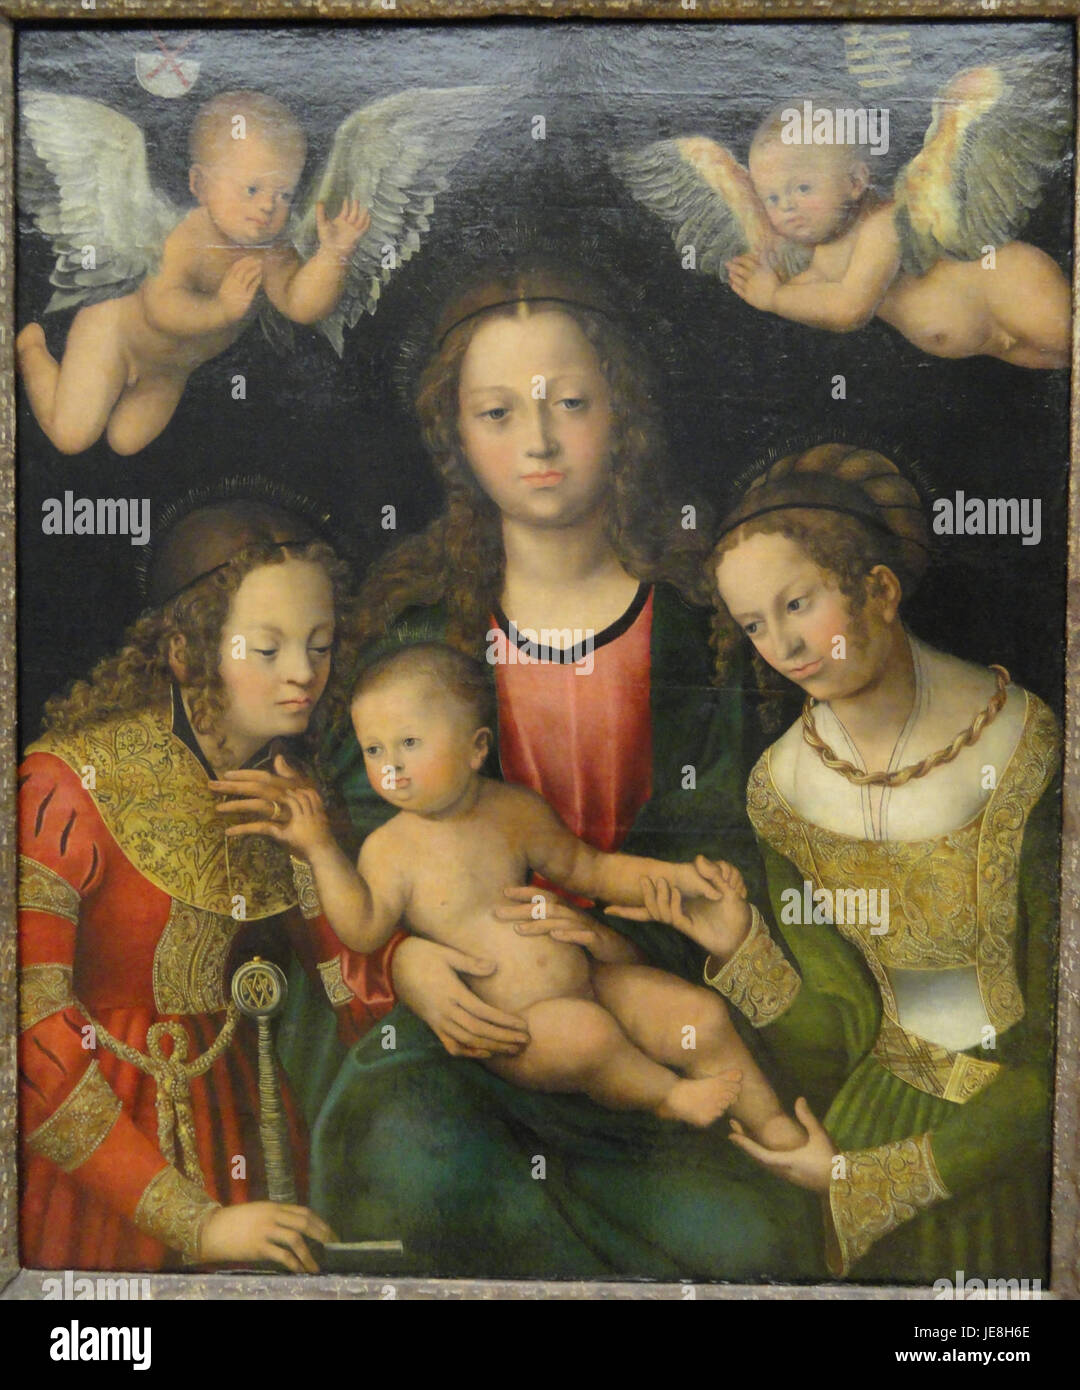 Virgin and Child with the Saints Catherine and Barbara by Lucas Cranach the Elder - Statens Museum for Kunst - DSC08163 - Stock Image